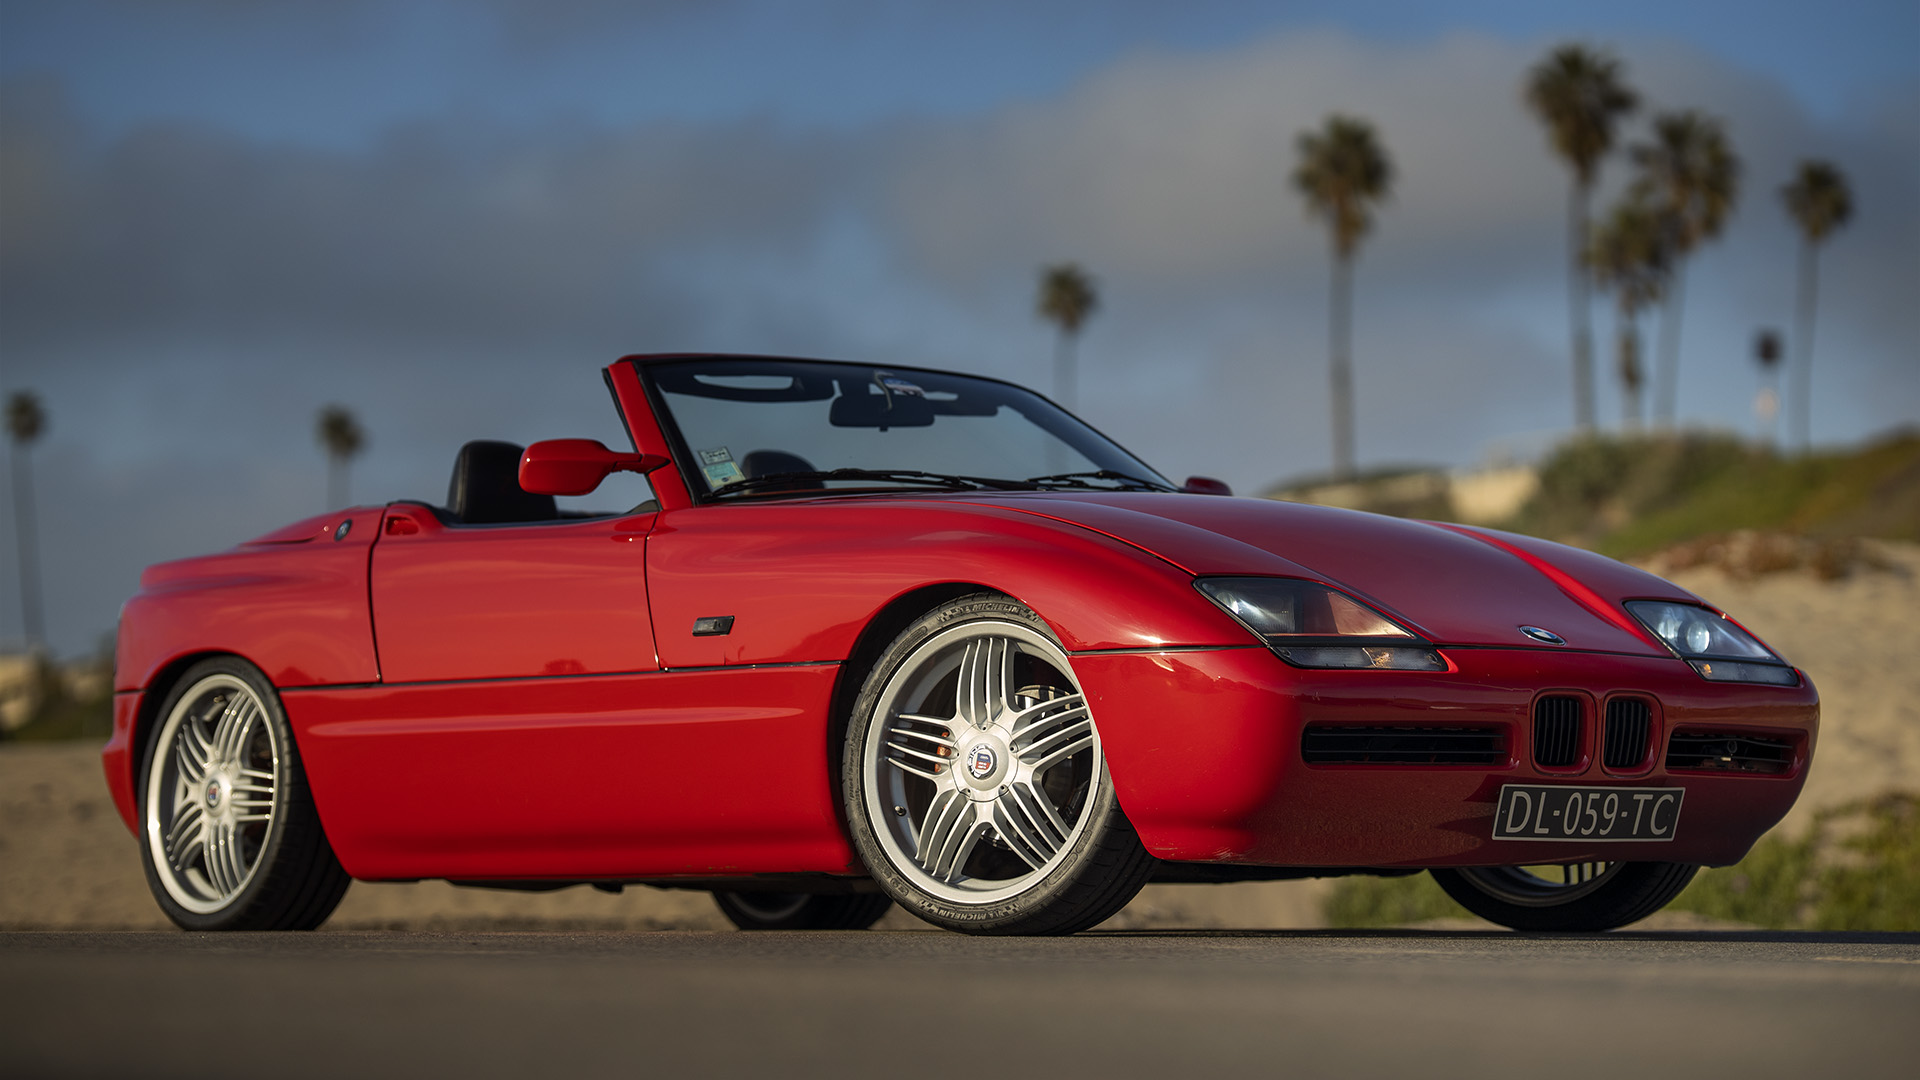 From Paris to Los Angeles - BMW Z1 Roadster